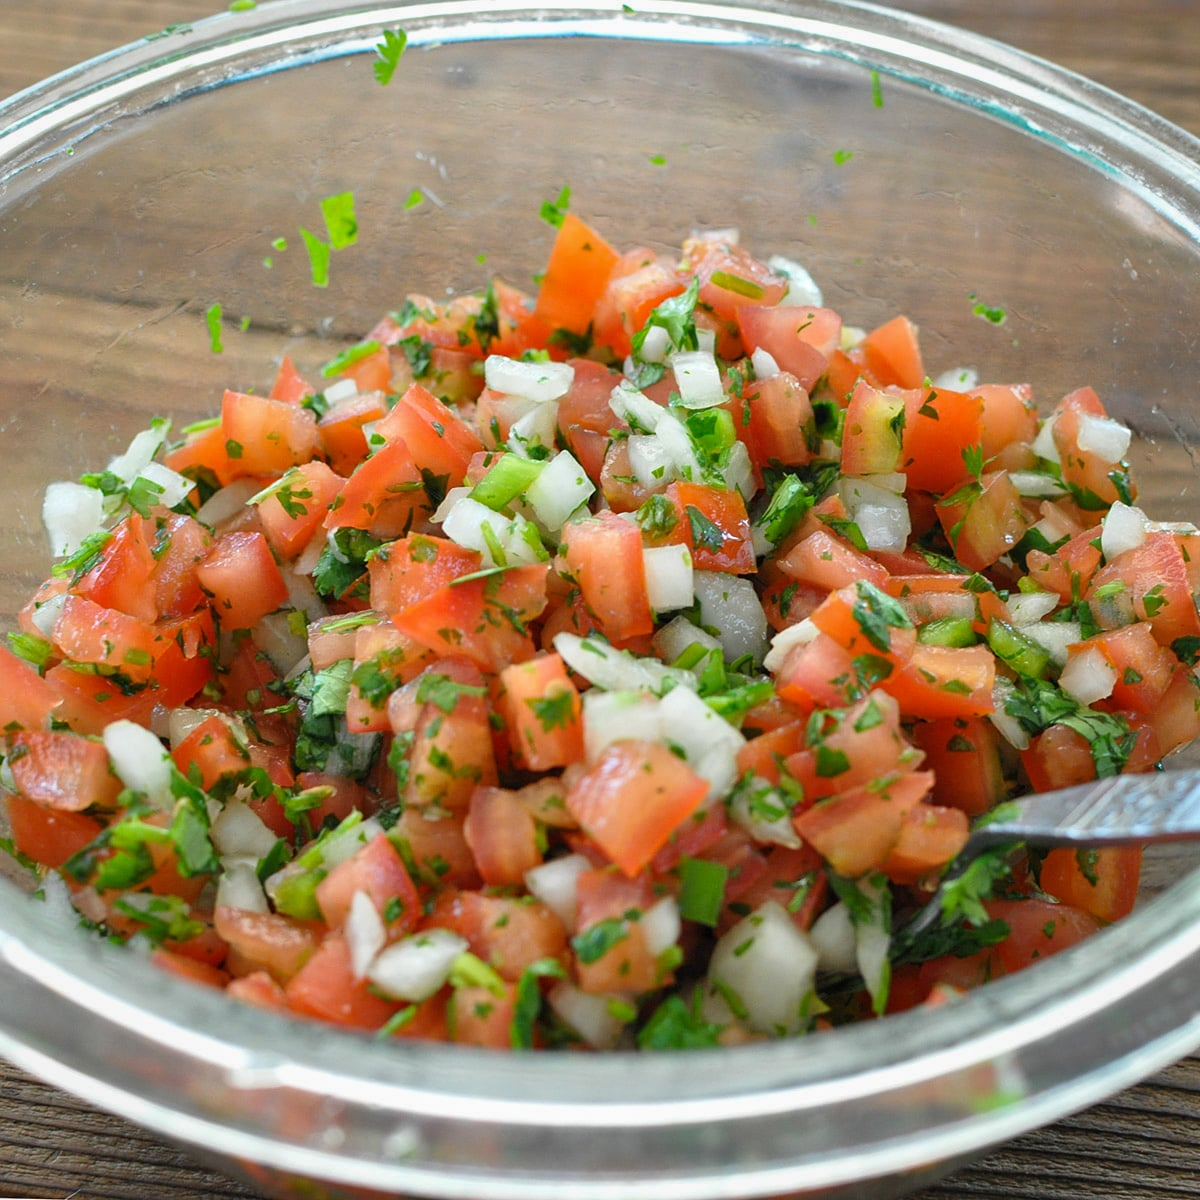 a glass bowl filled with pico de gallo